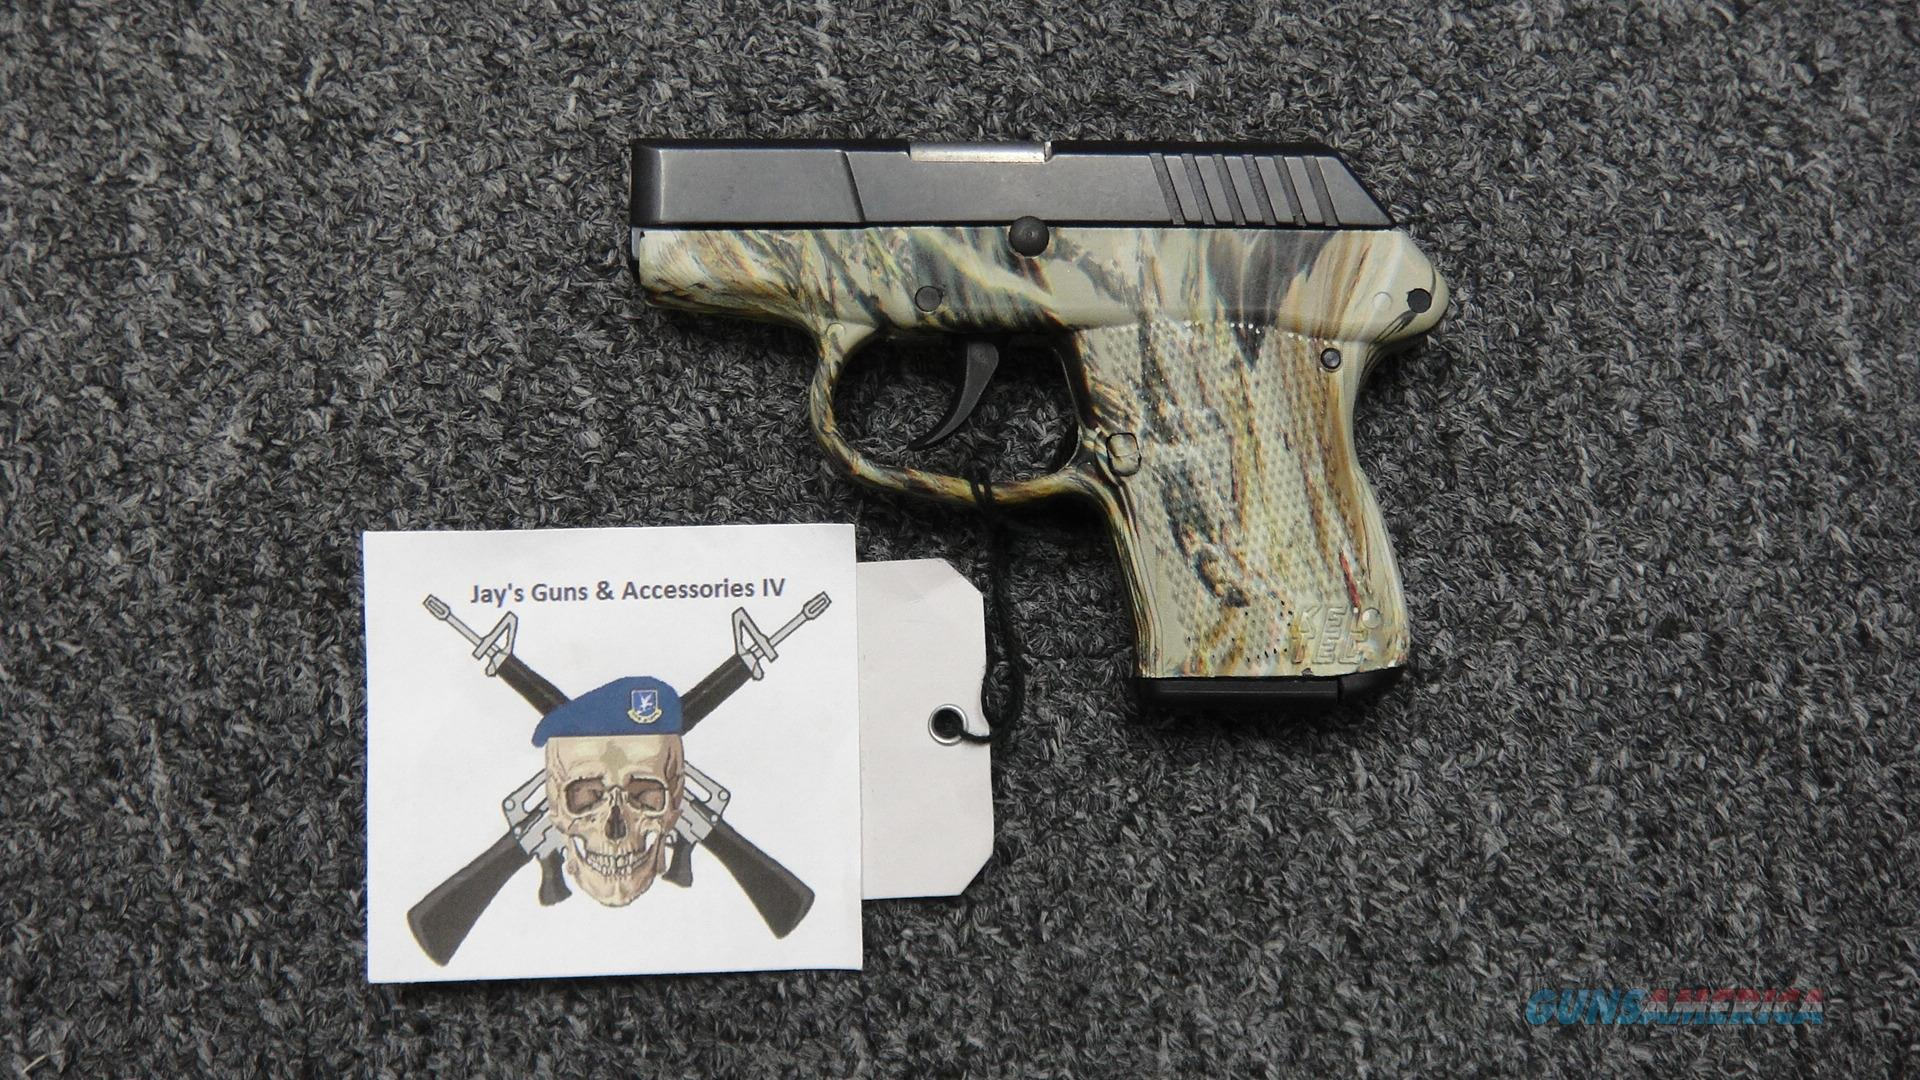 Kel-Tec P3AT .380ACP True Timber Camo  Guns > Pistols > Kel-Tec Pistols > Pocket Pistol Type